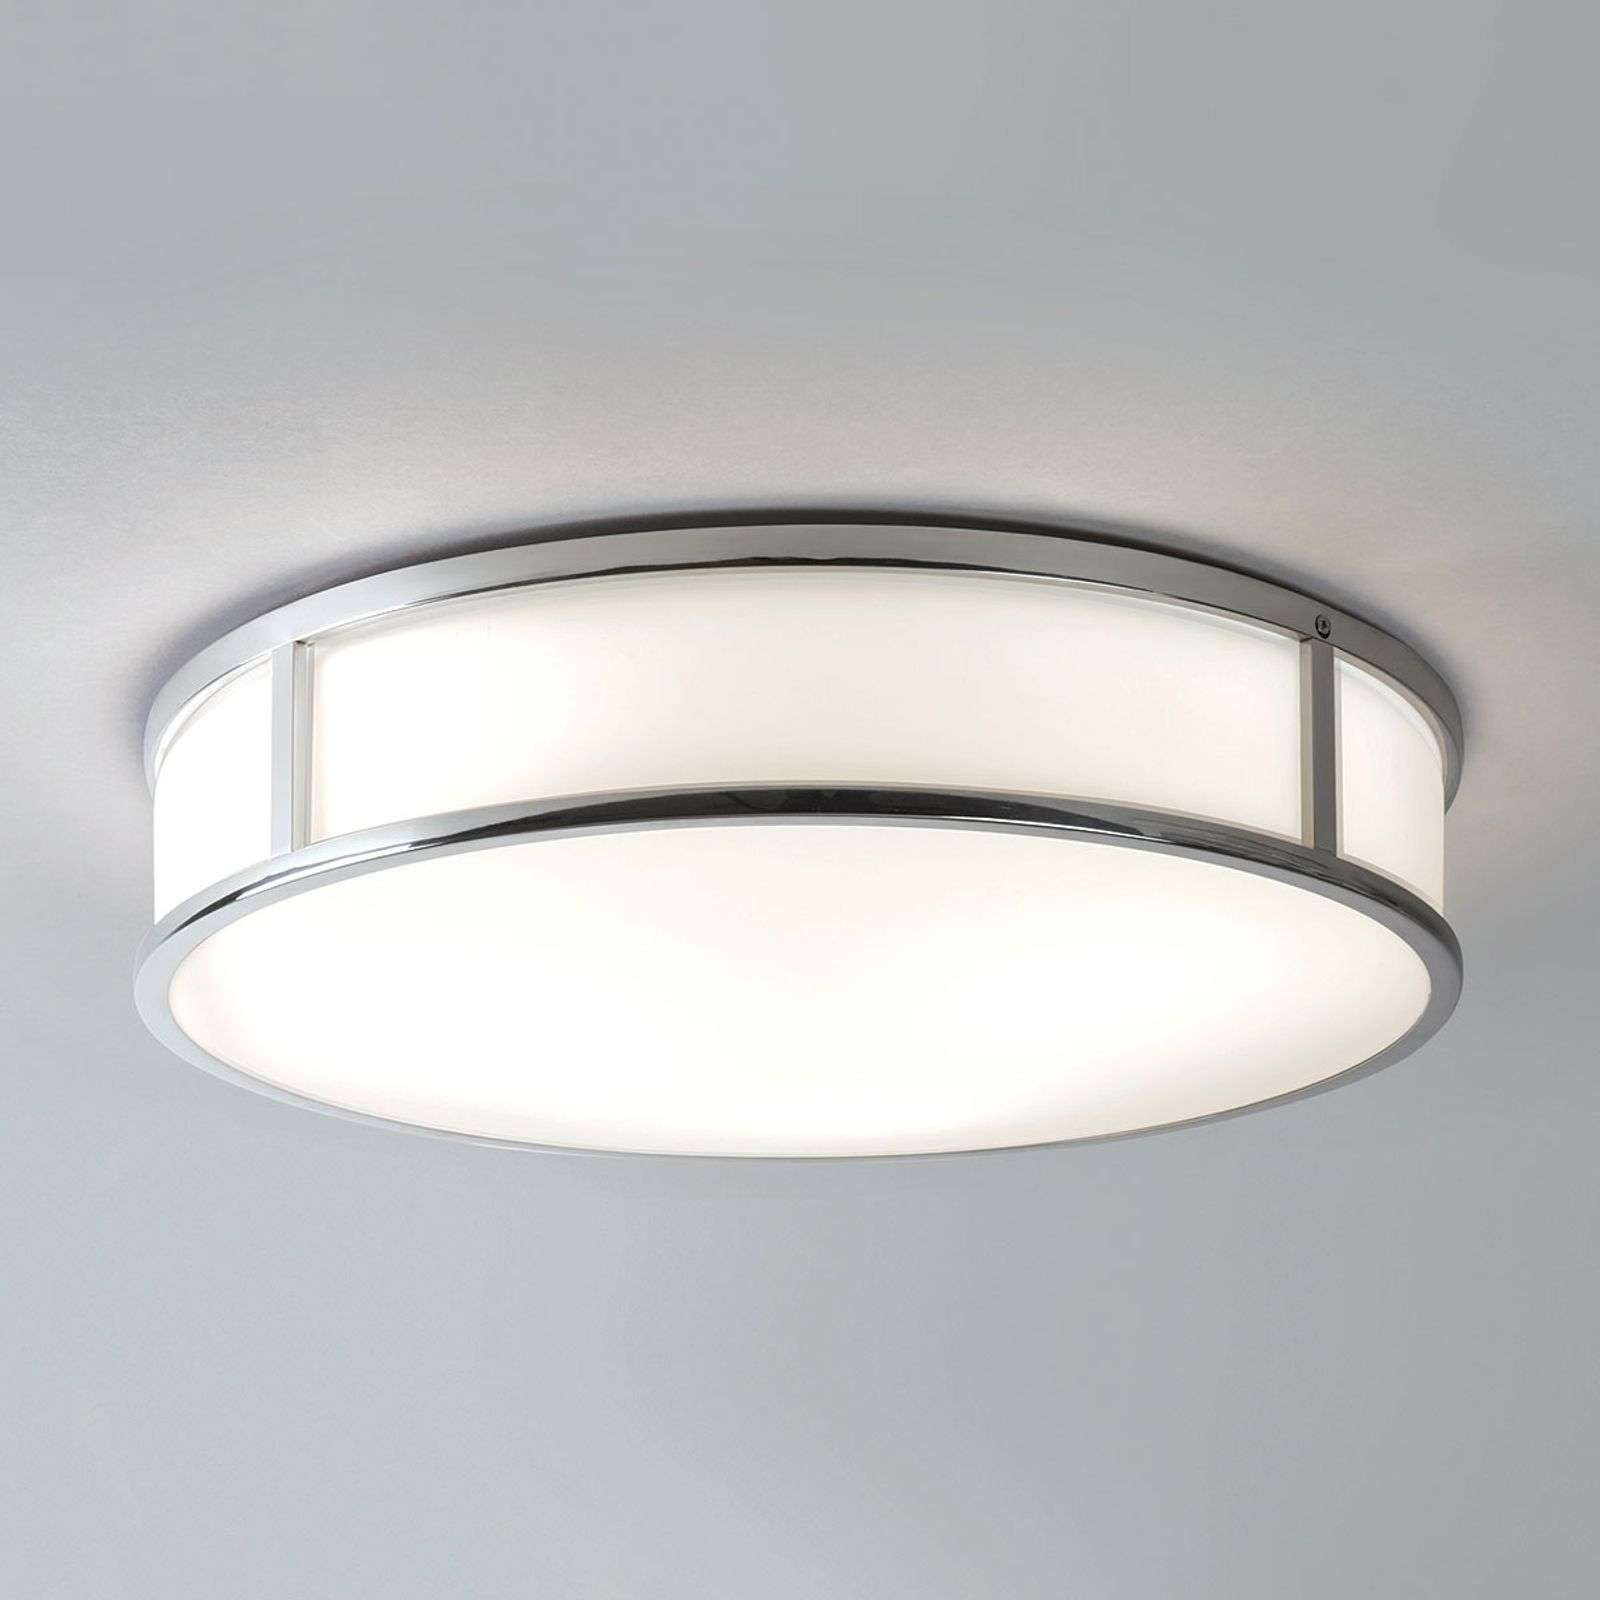 Astro Mashiko Round ceiling light   40 cm chrome